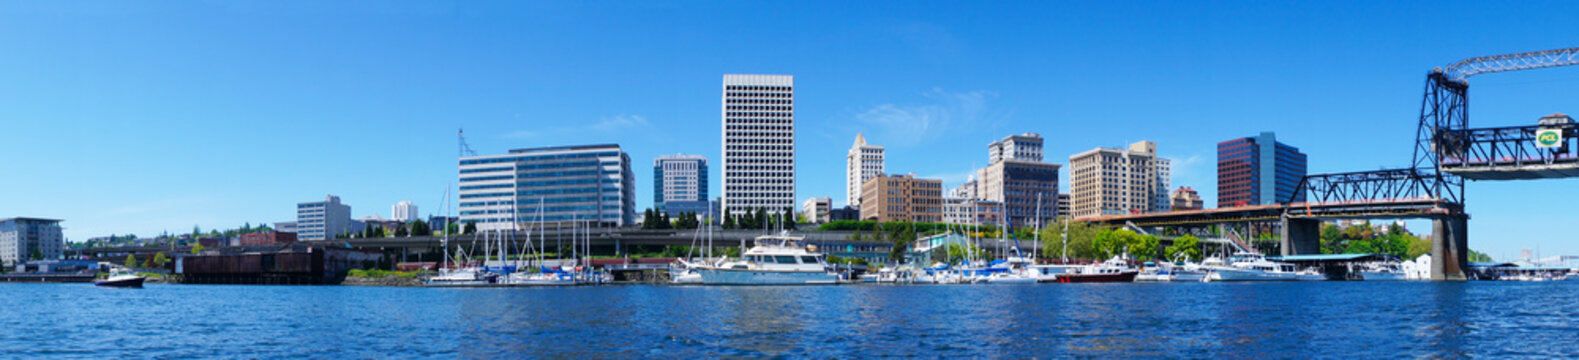 Tacoma downtown water view with business buildings.